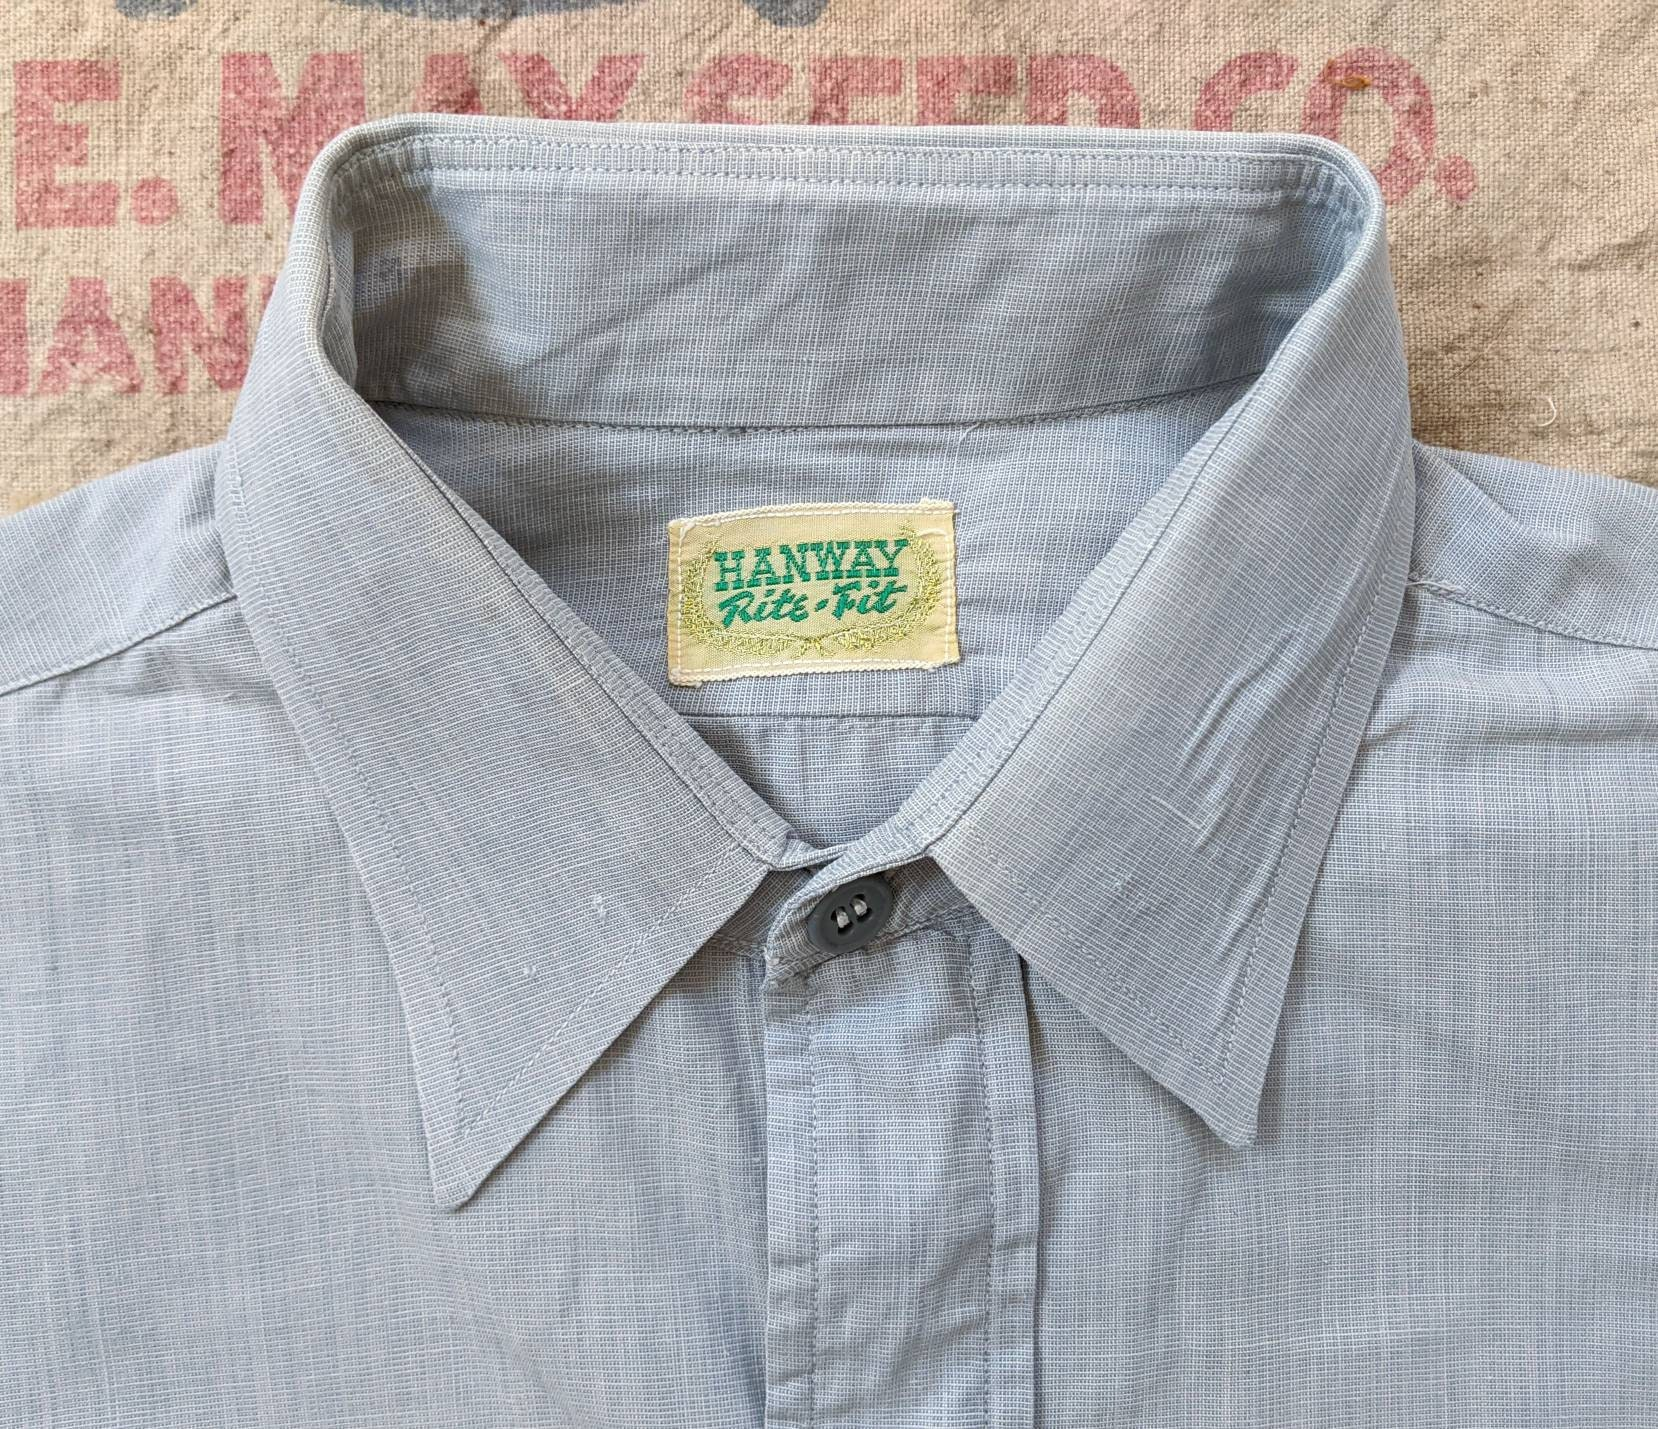 1940s Men's Shirts, Sweaters, Vests 1940s Salt  Pepper Chambray Shirt S Small Vintage 1940S Cotton Hanway Dress Casual Workwear Work 40S Long Sleeve 40s 50S $0.00 AT vintagedancer.com